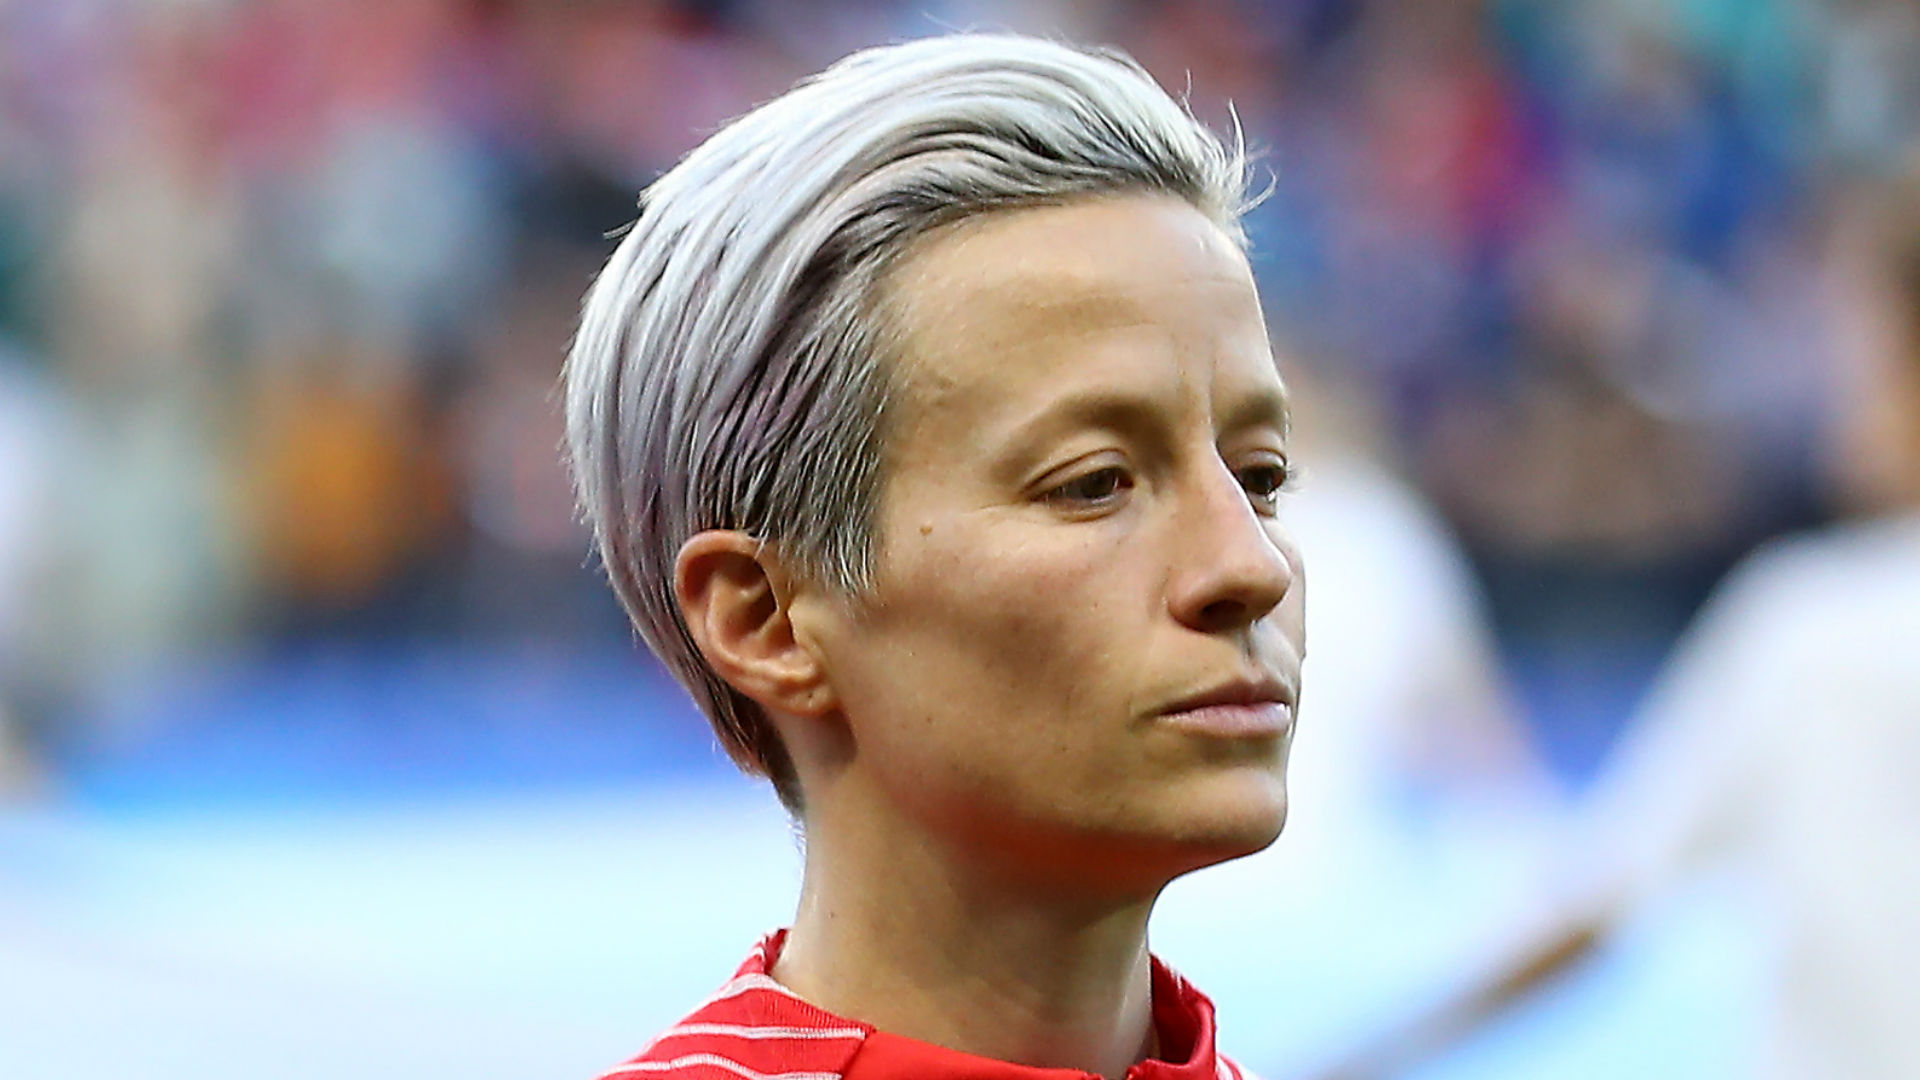 In-form Rapinoe dropped to USA bench, goalkeeper Telford drafted in for England